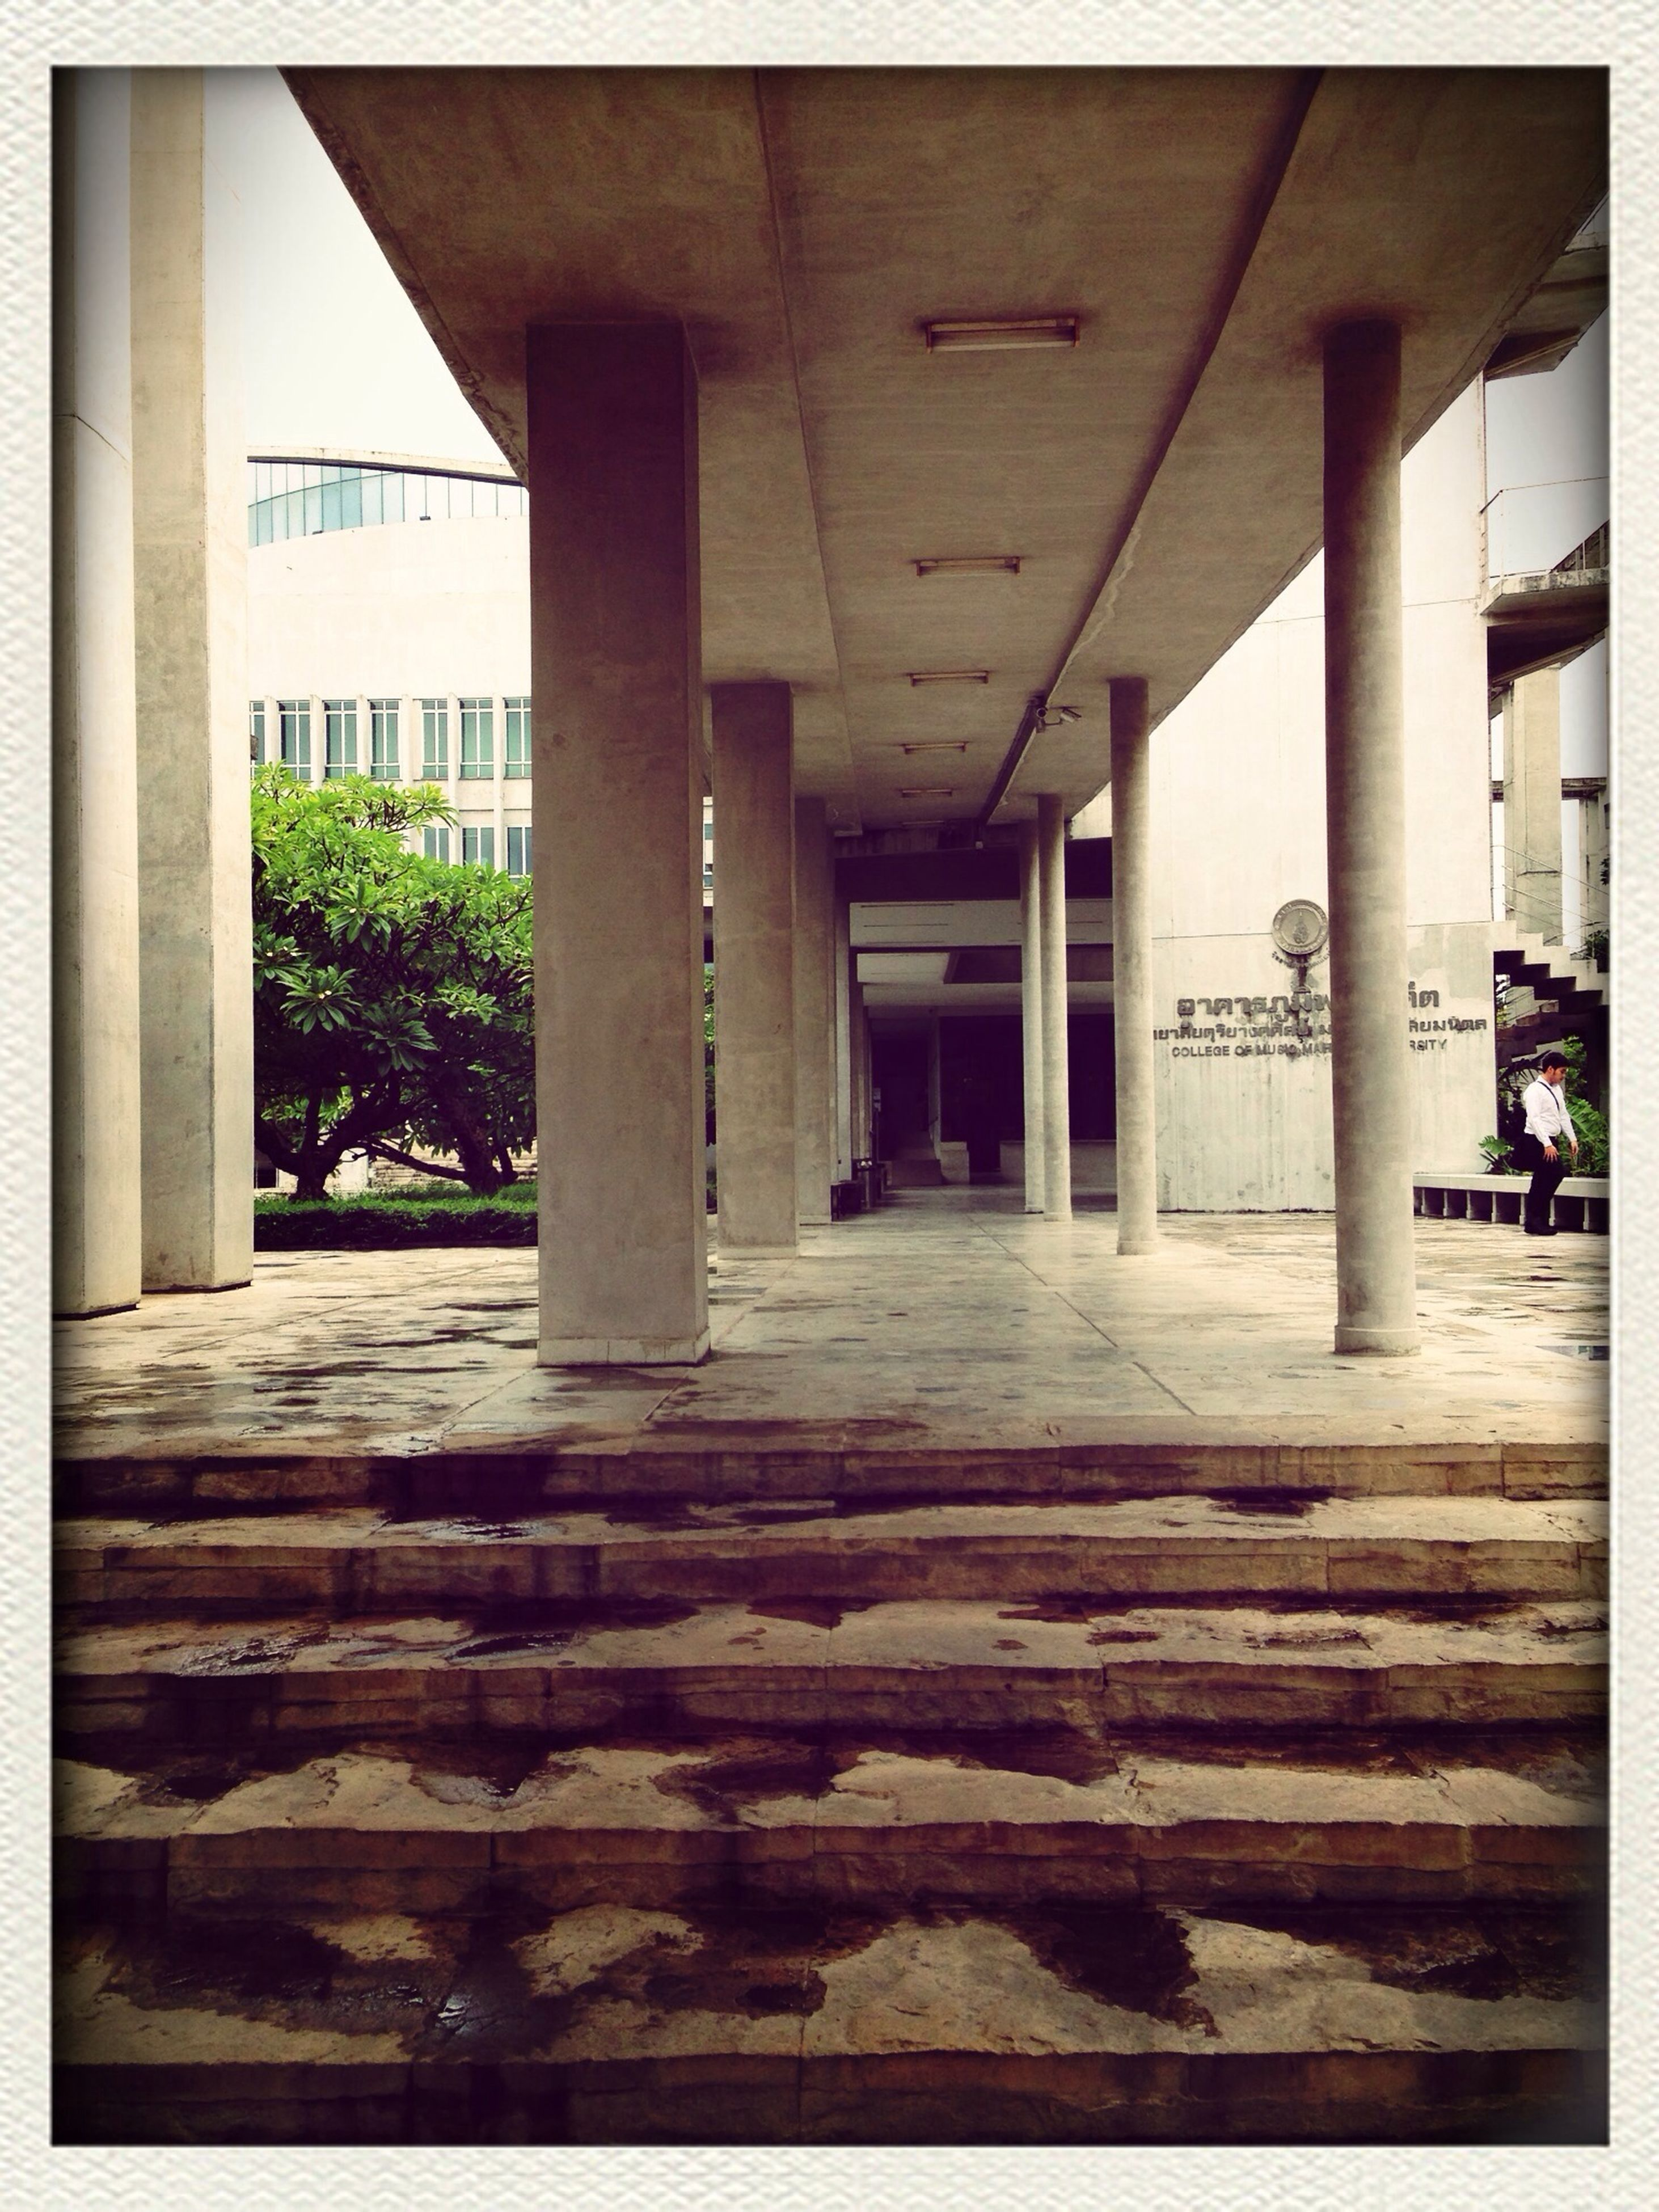 transfer print, architecture, built structure, auto post production filter, building exterior, architectural column, column, sunlight, incidental people, building, city, day, shadow, indoors, the way forward, steps, colonnade, paving stone, person